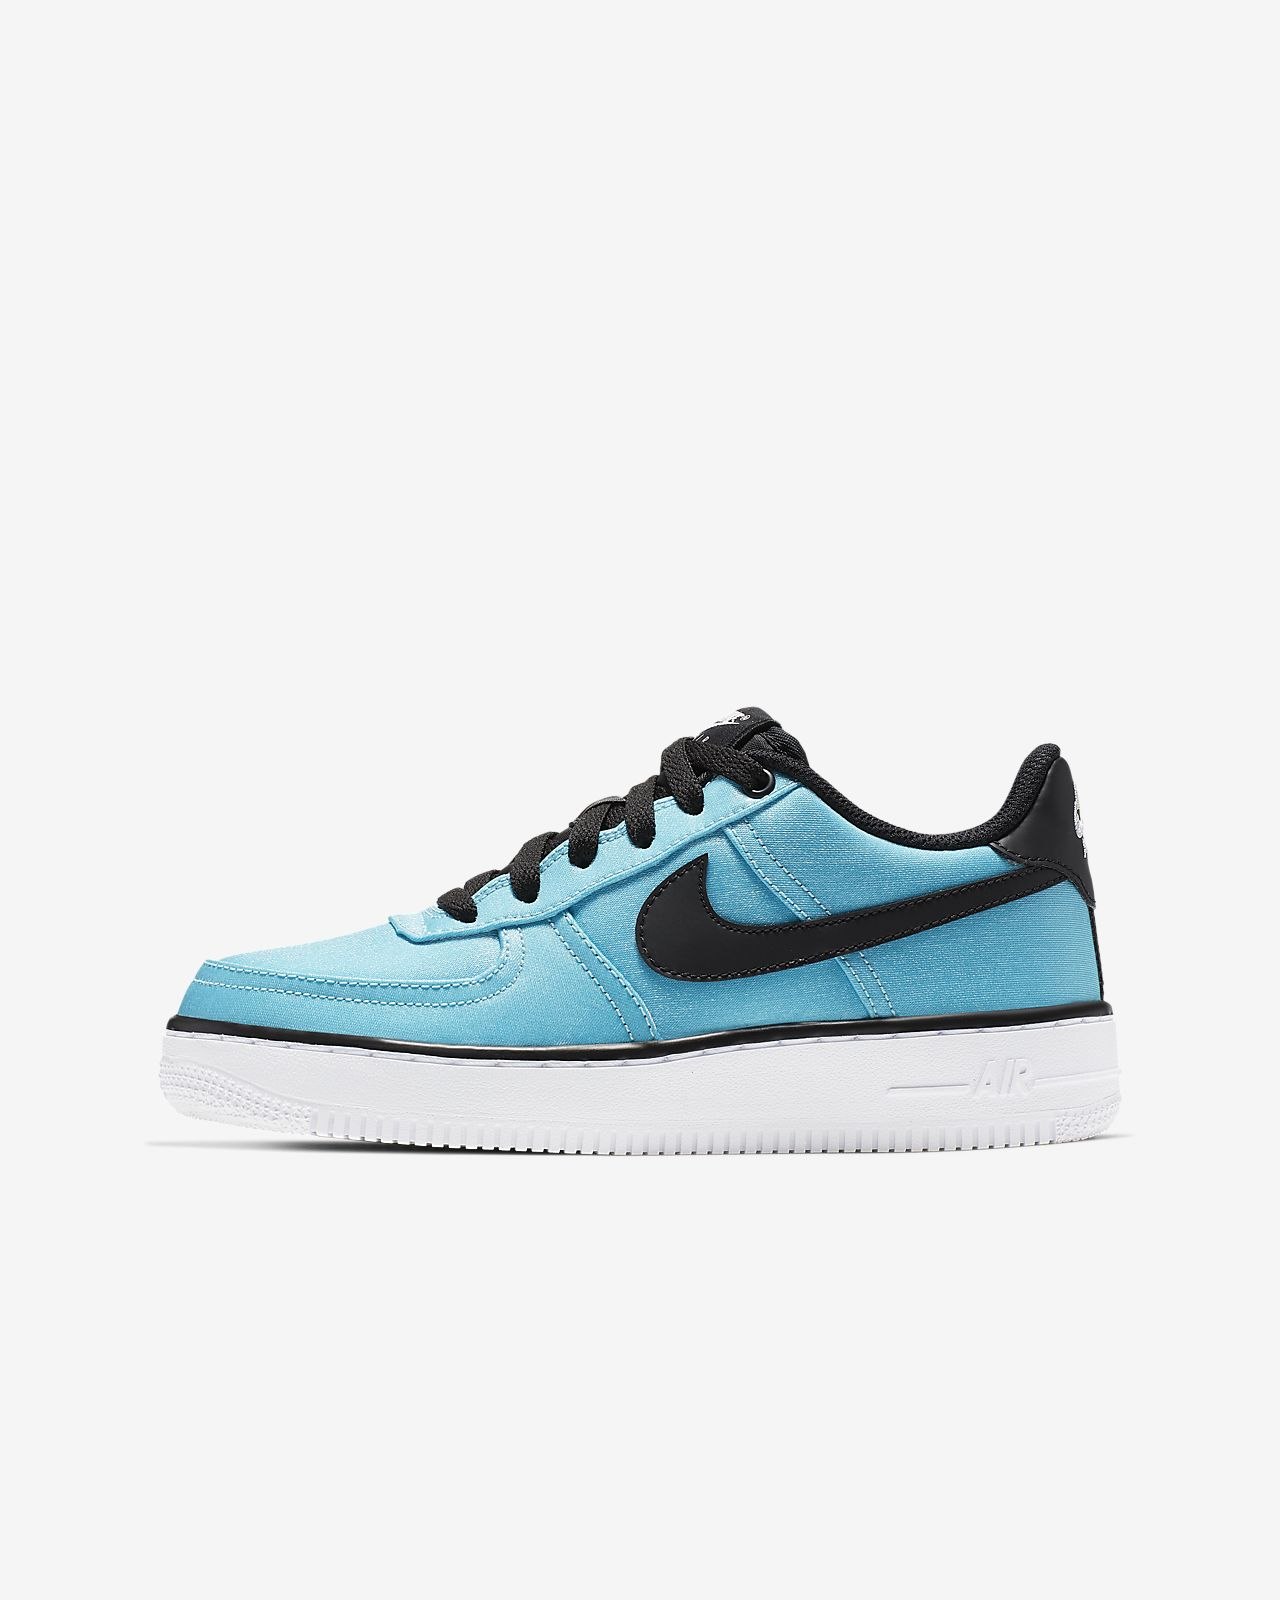 Nike Air Force 1 LV8 Shift Big Kids' Shoe